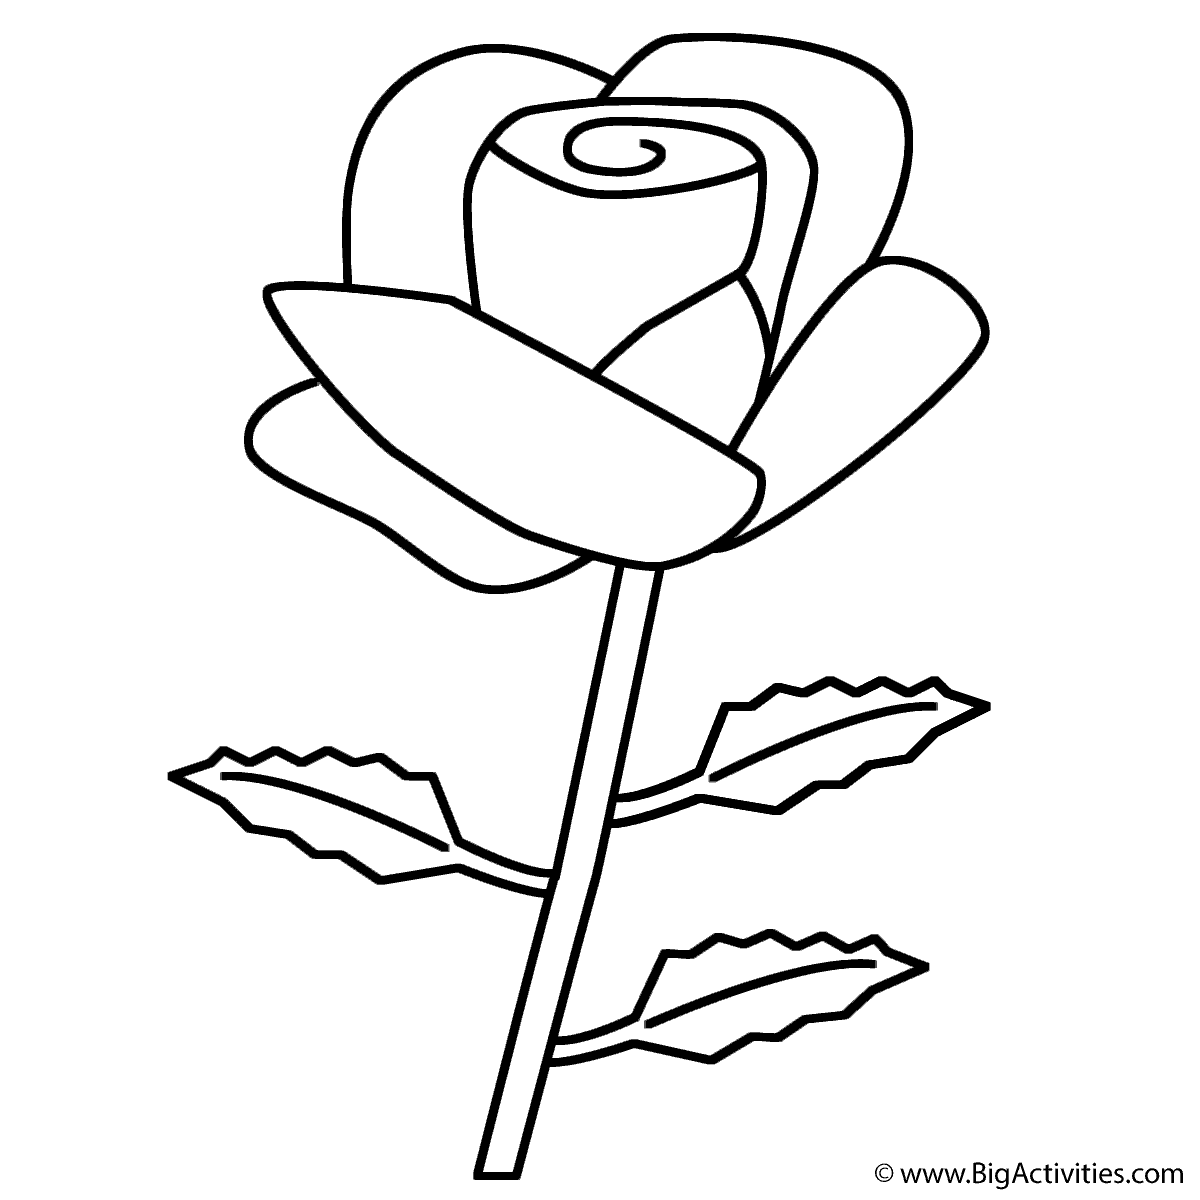 Rose Coloring Pages   Free download best Rose Coloring Pages on ...